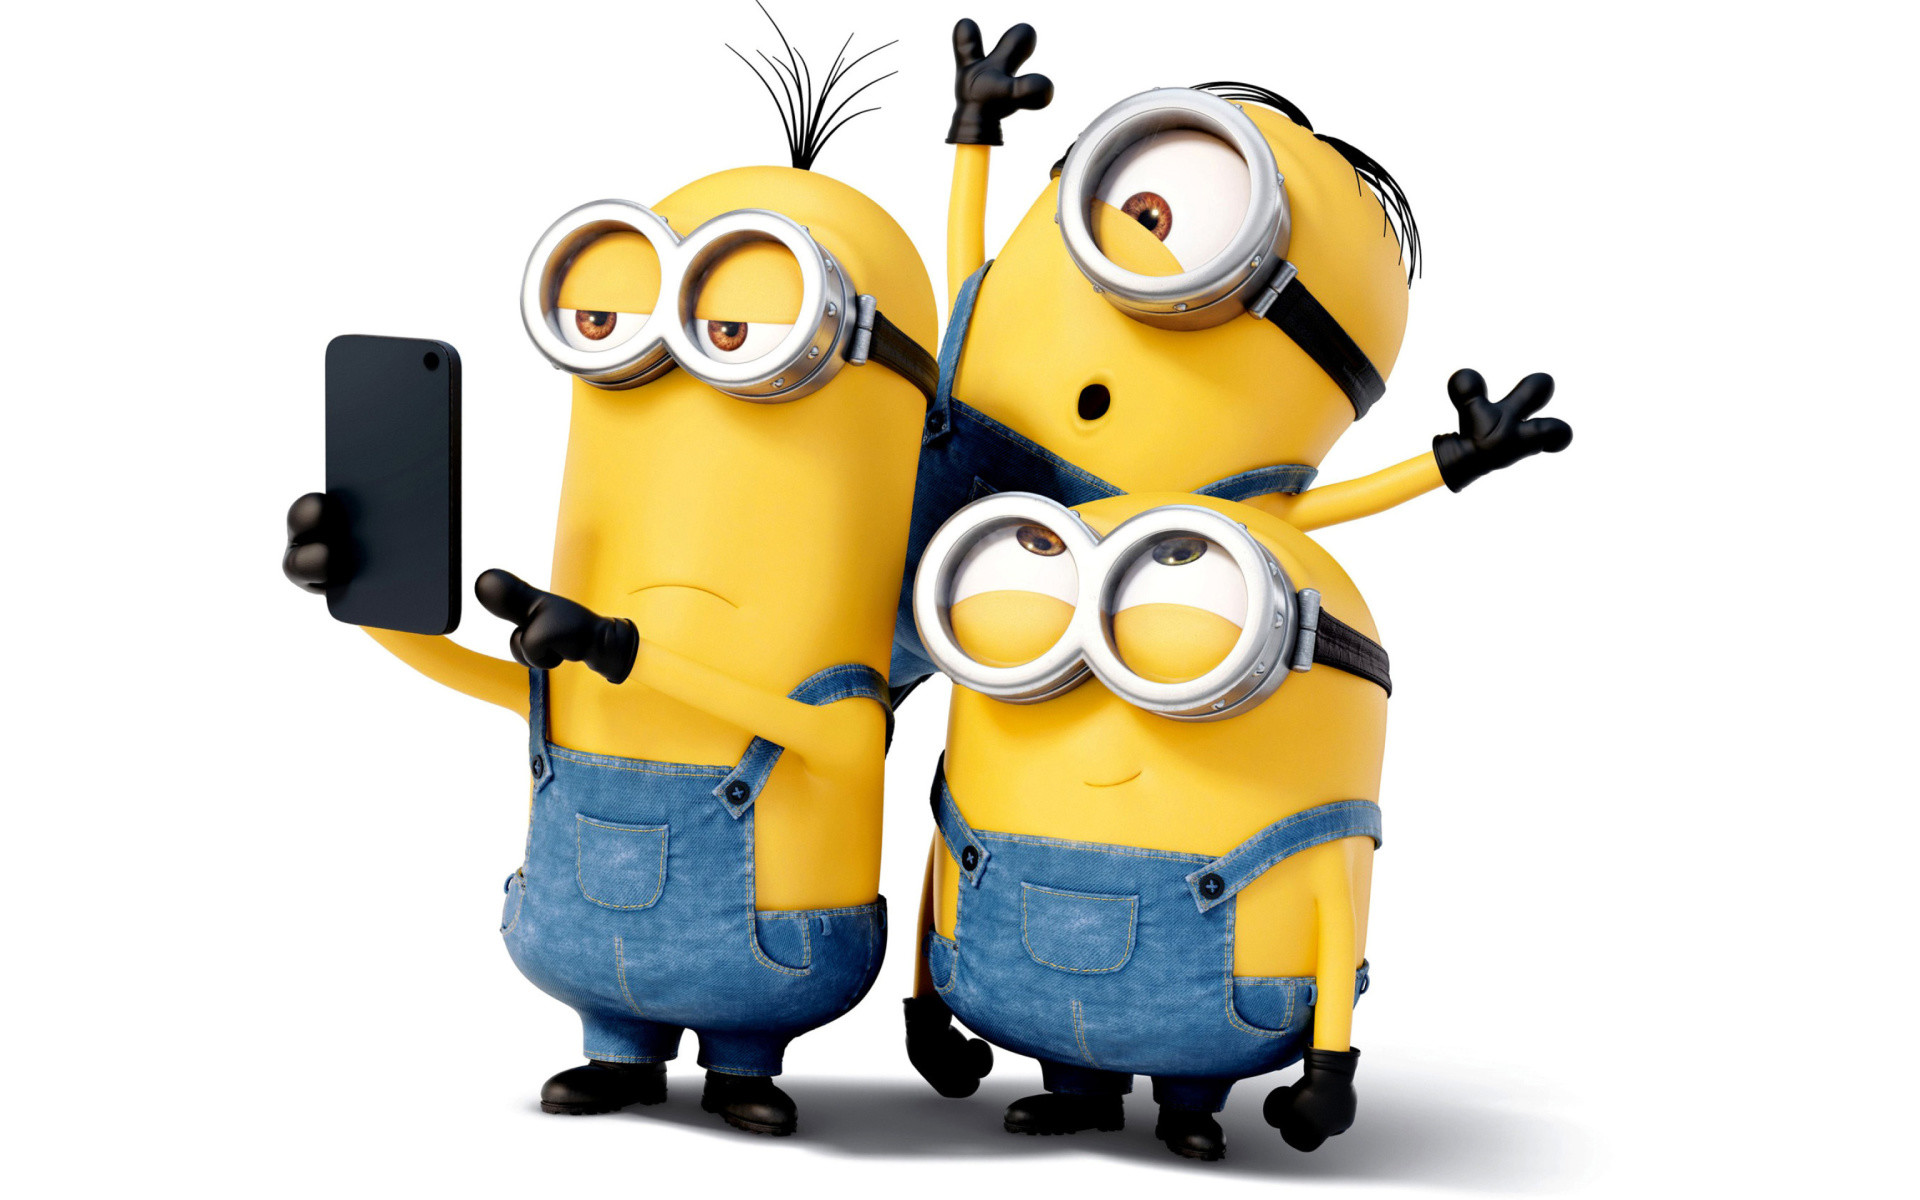 Cute Funny Minions Wallpapers, Backgrounds